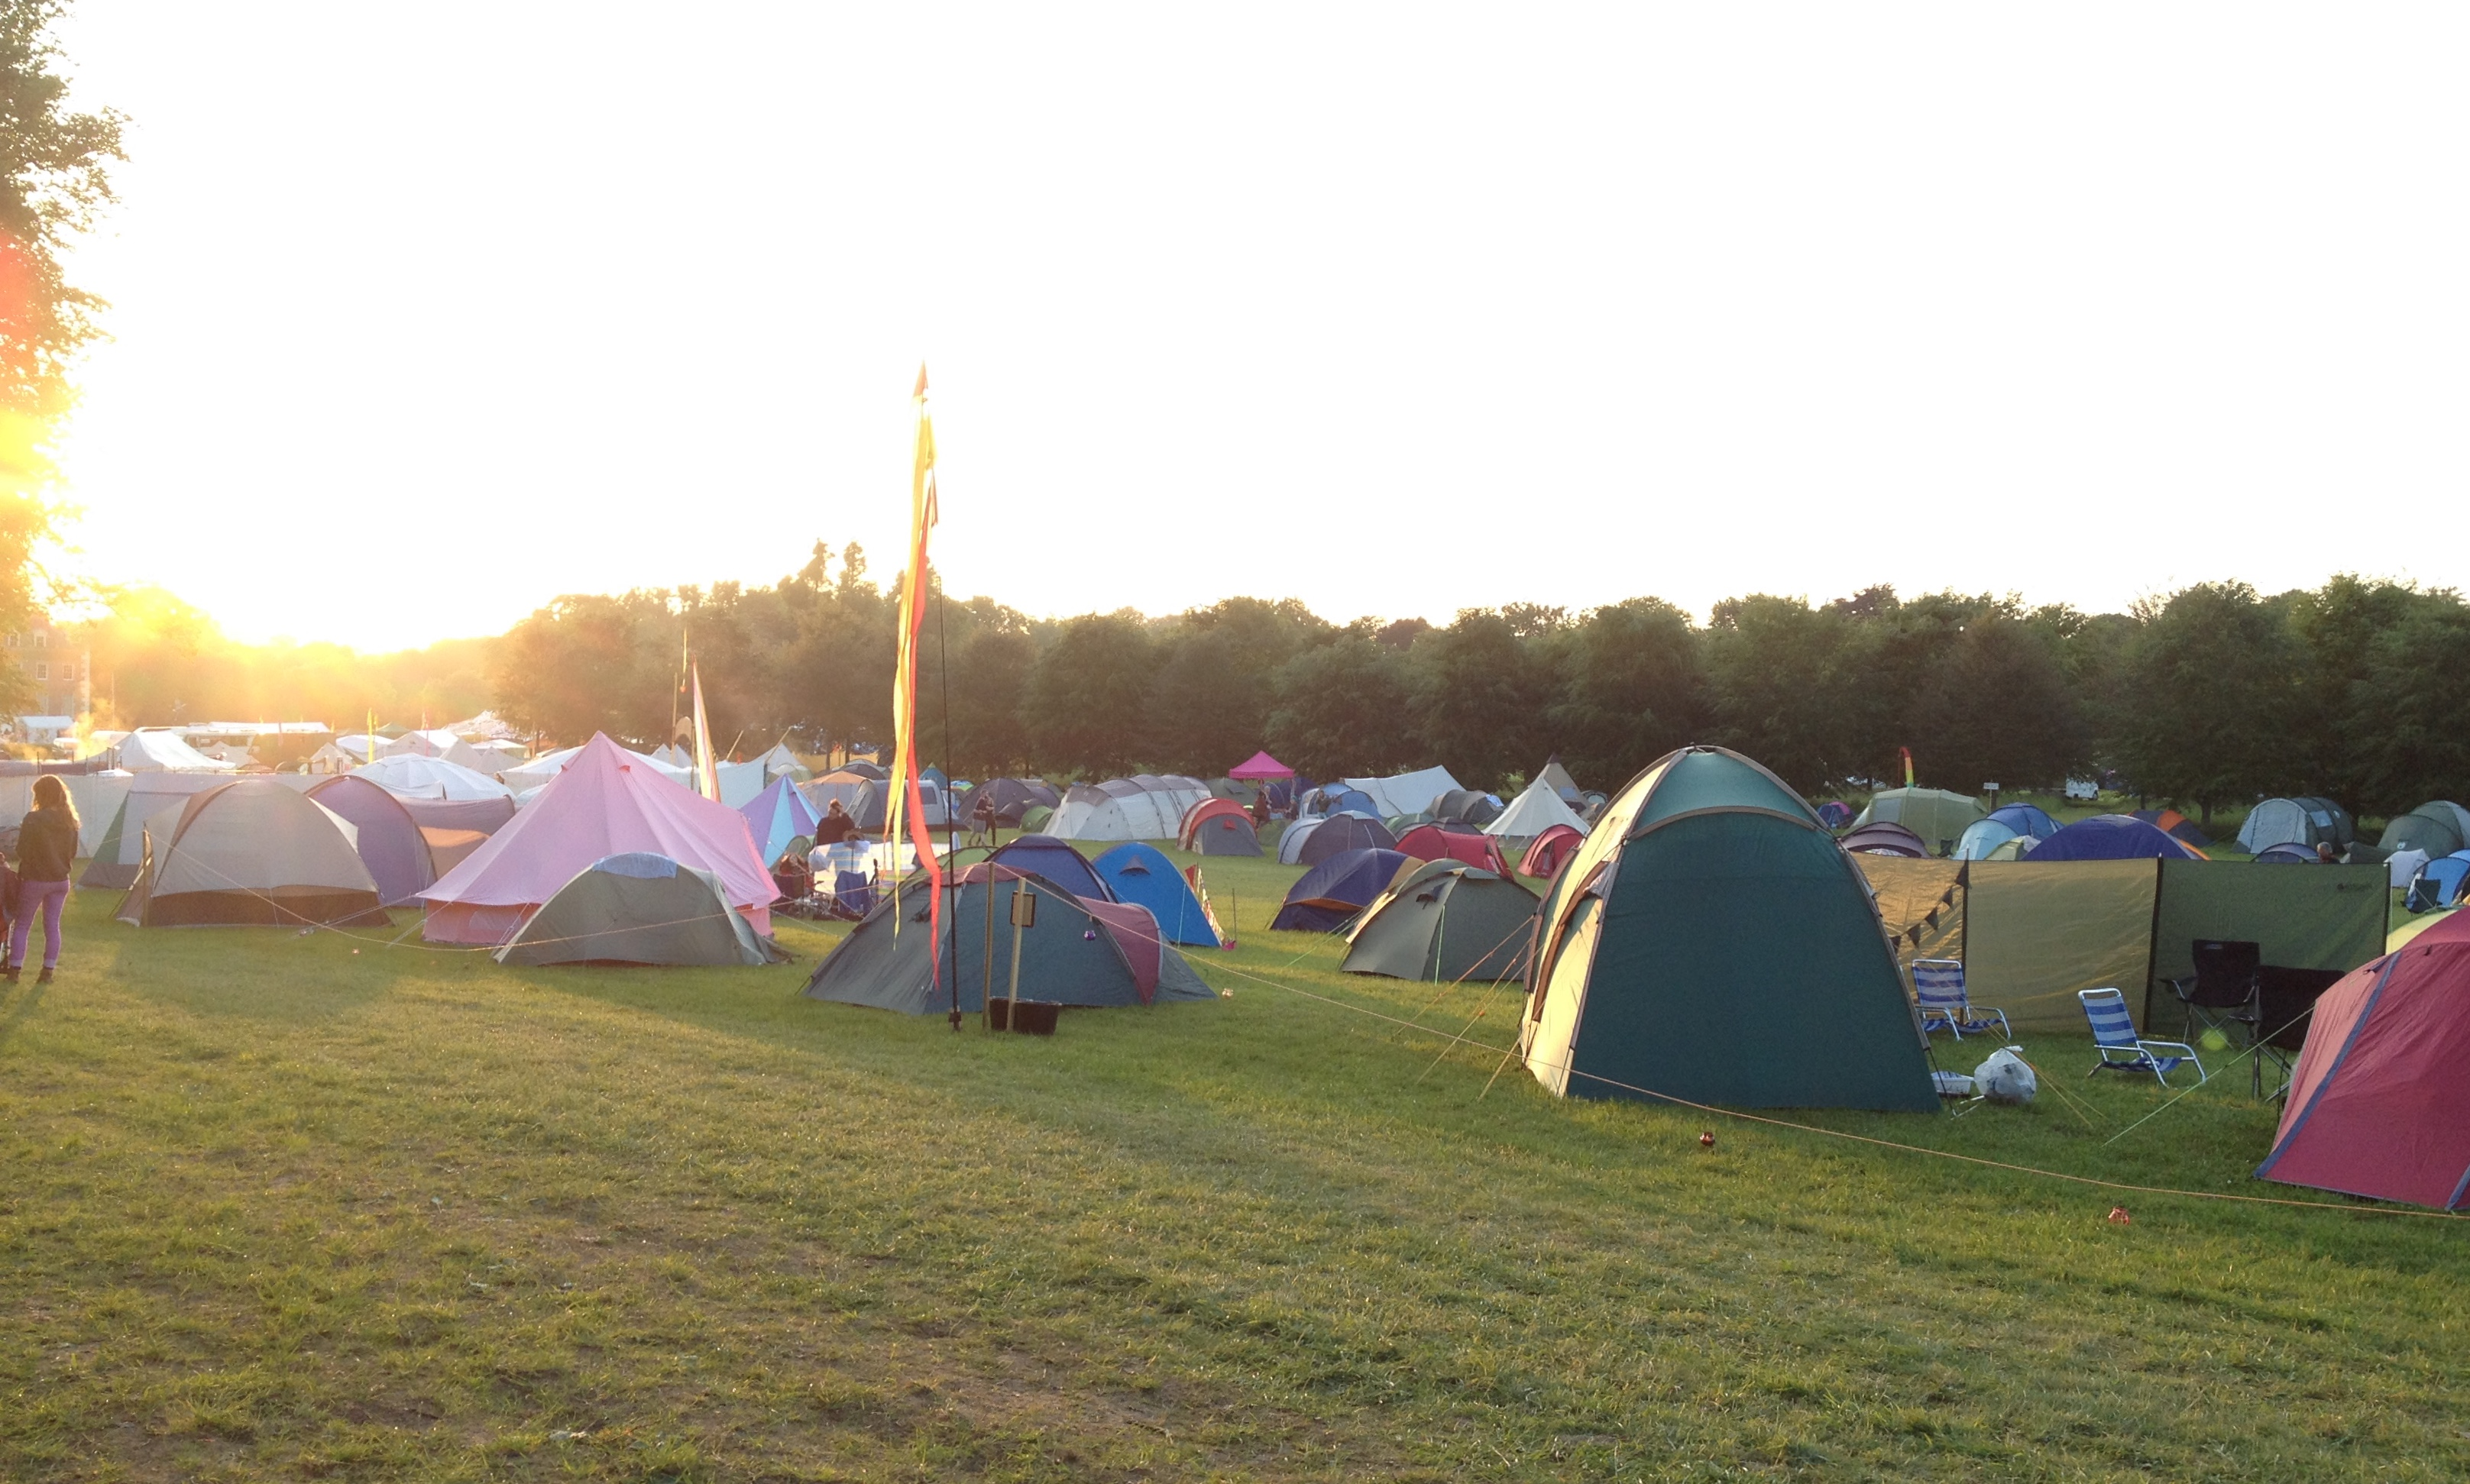 Camping at Colourfest 2016